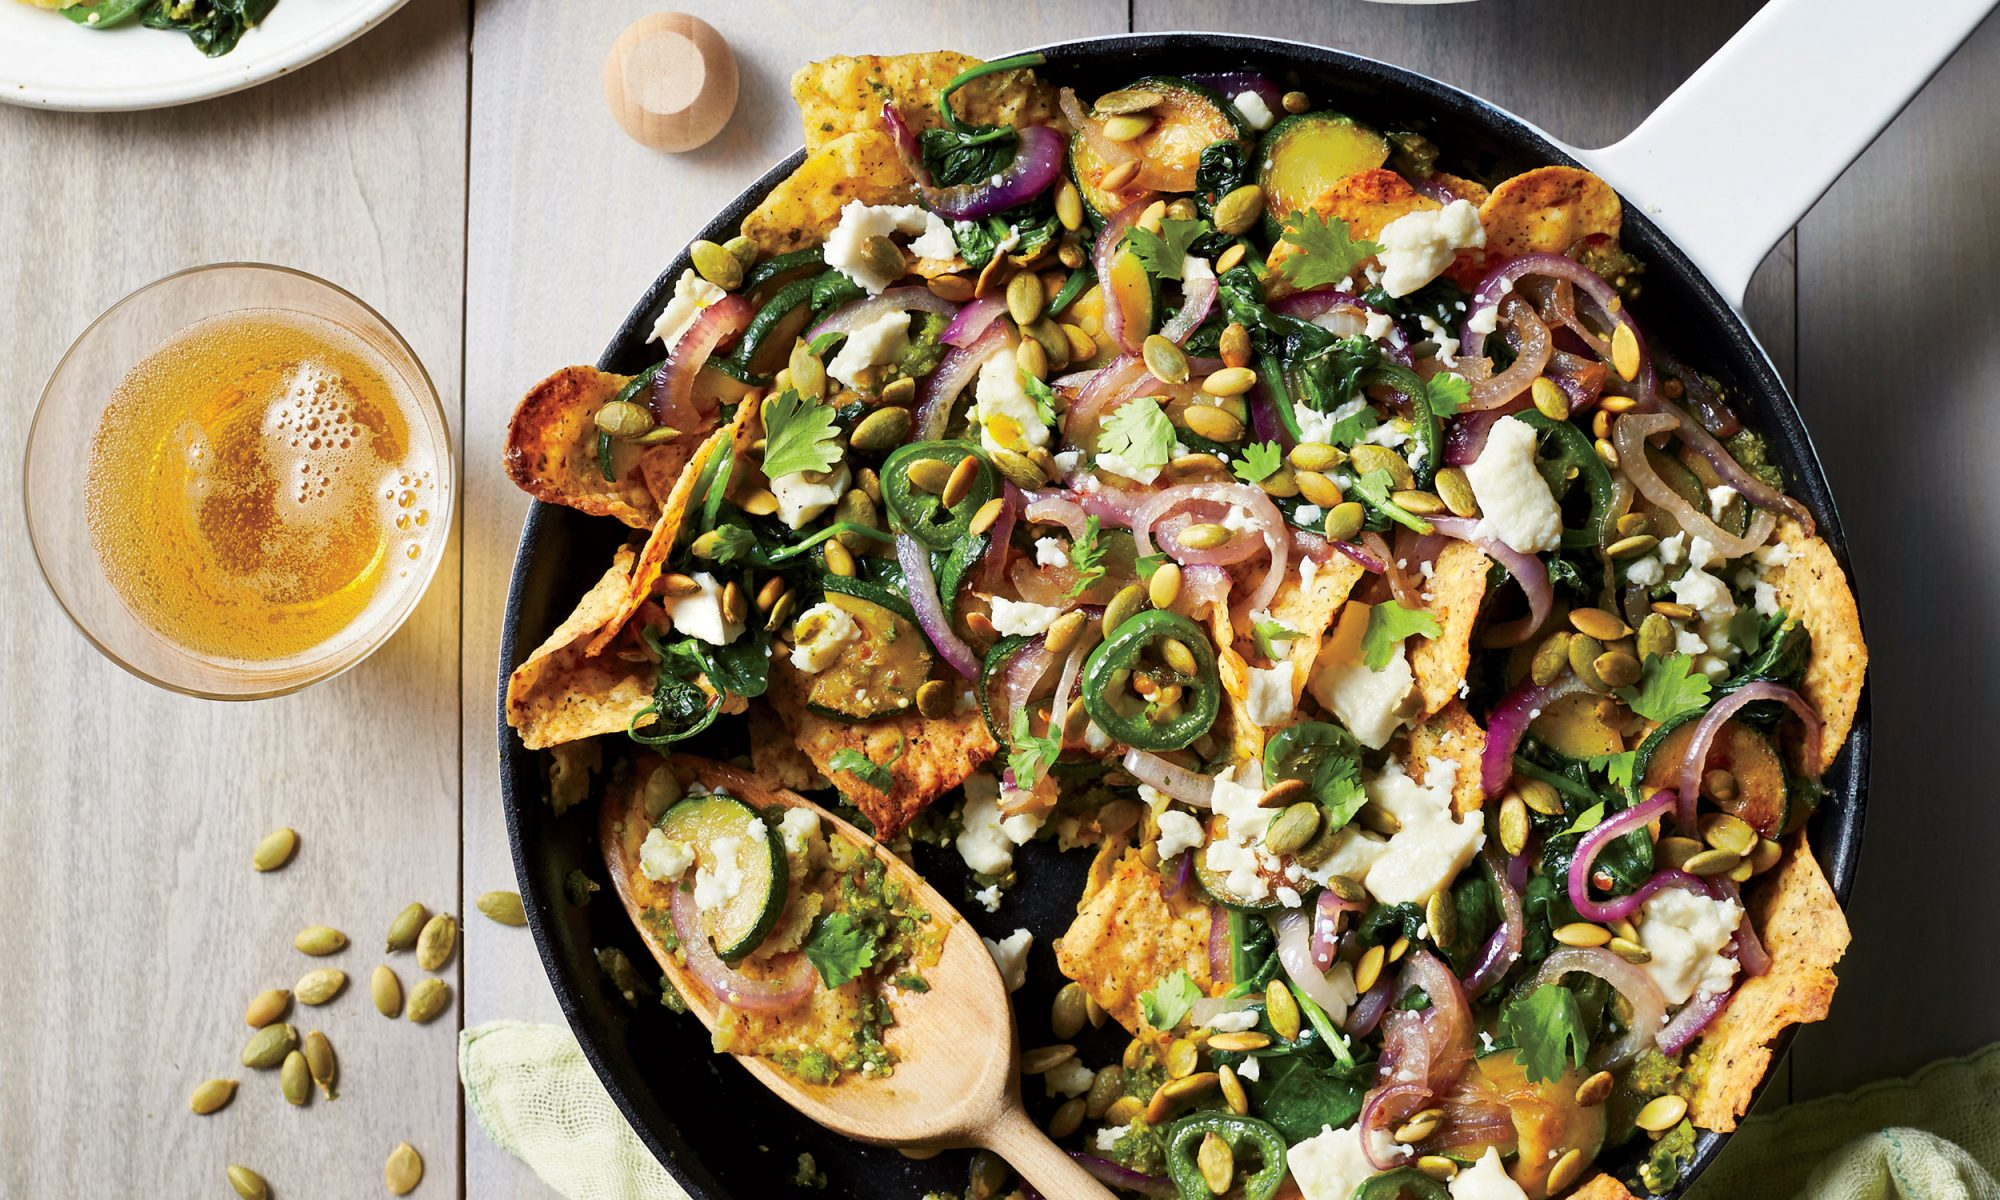 EC: This Healthy Chilaquiles Recipe Will Spice Up Your Breakfast Game